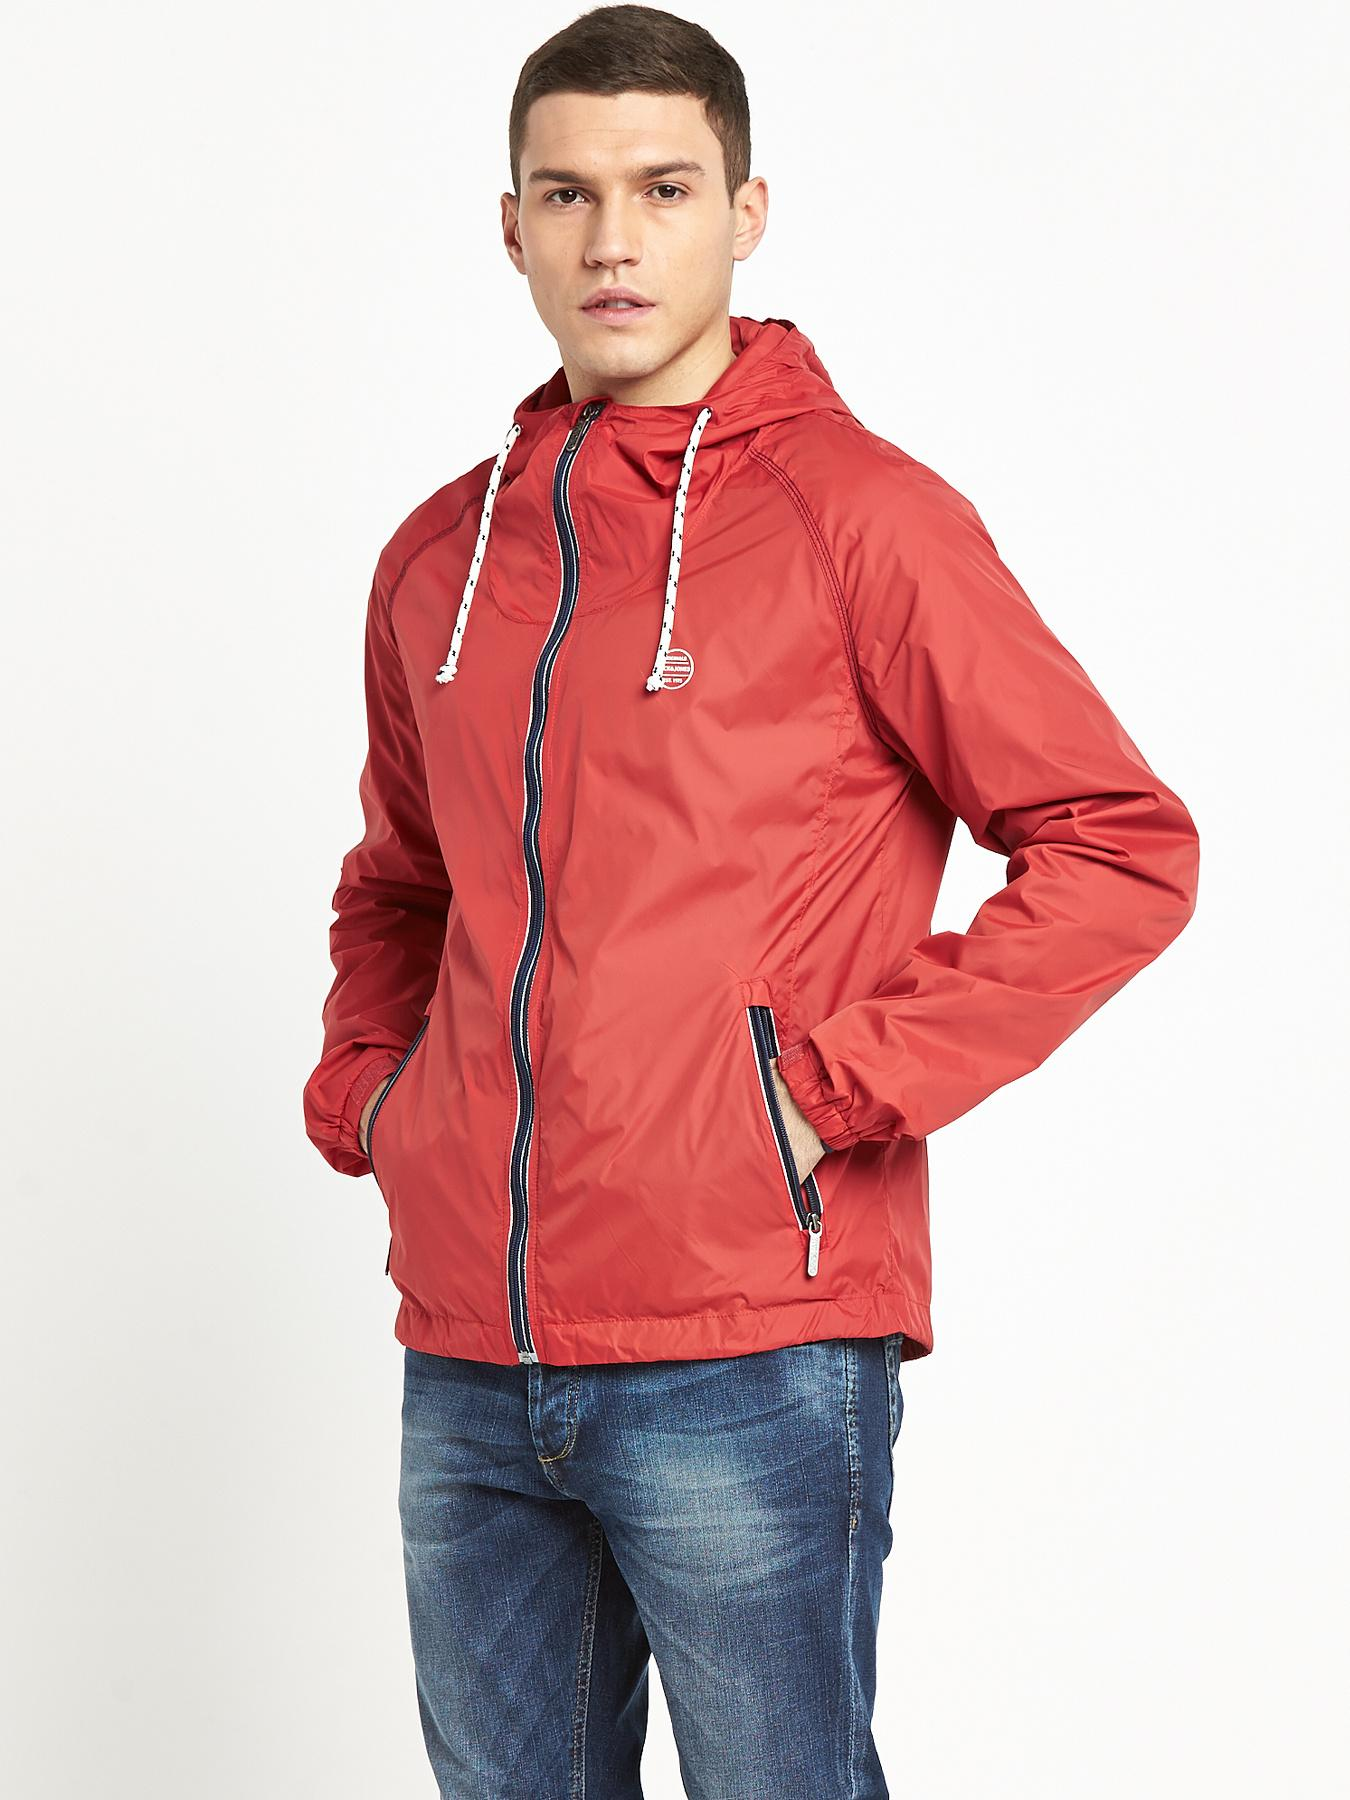 Jack & Jones Originals Mens Jacket